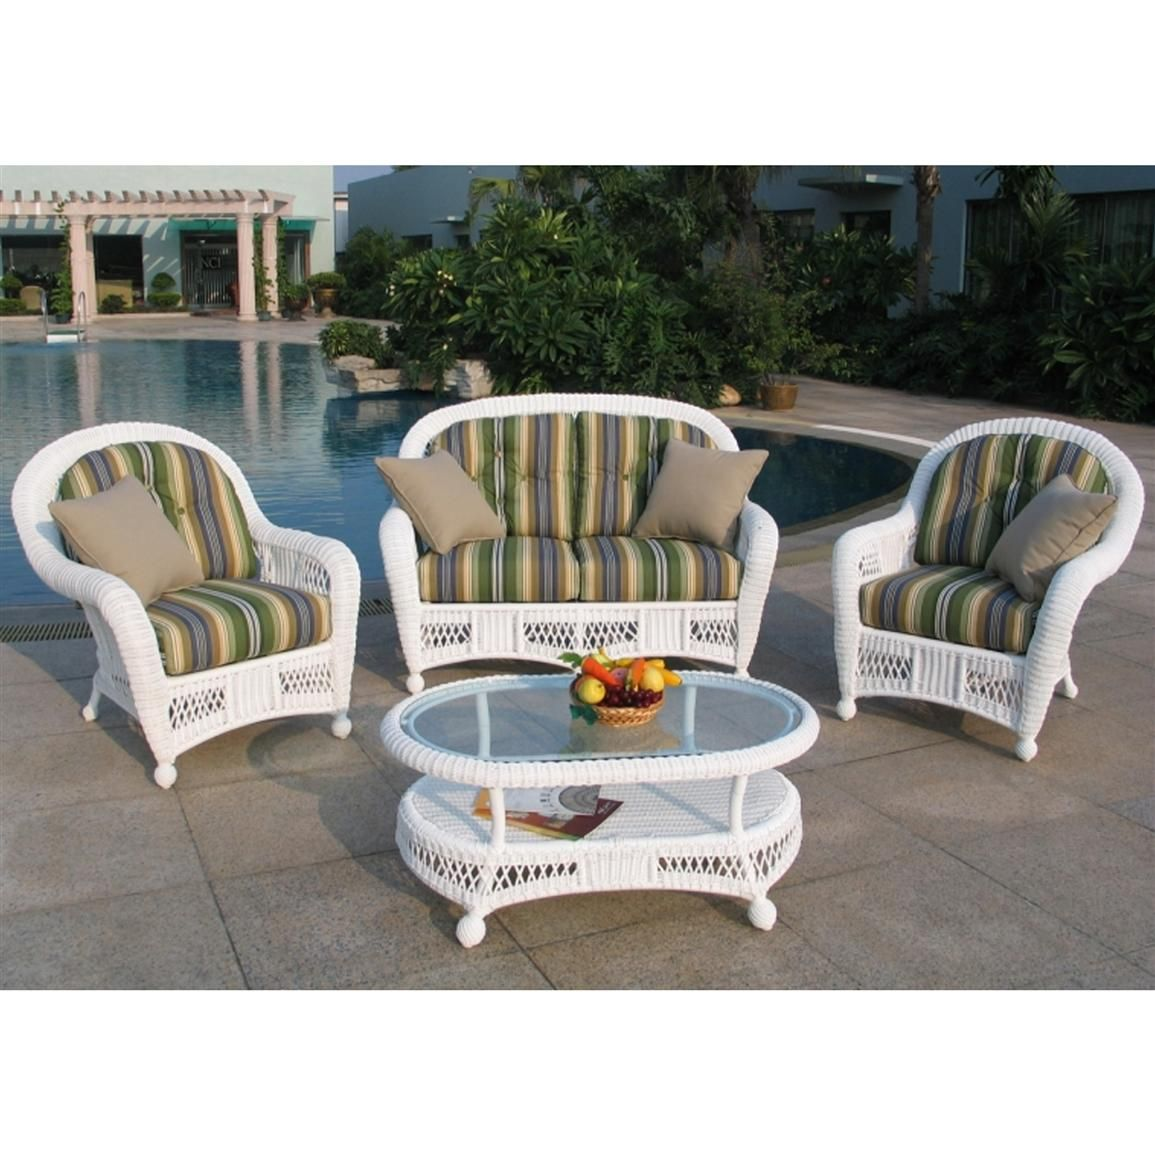 Chicago Wicker Montego 4 Pc. Wicker Patio Furniture Collection